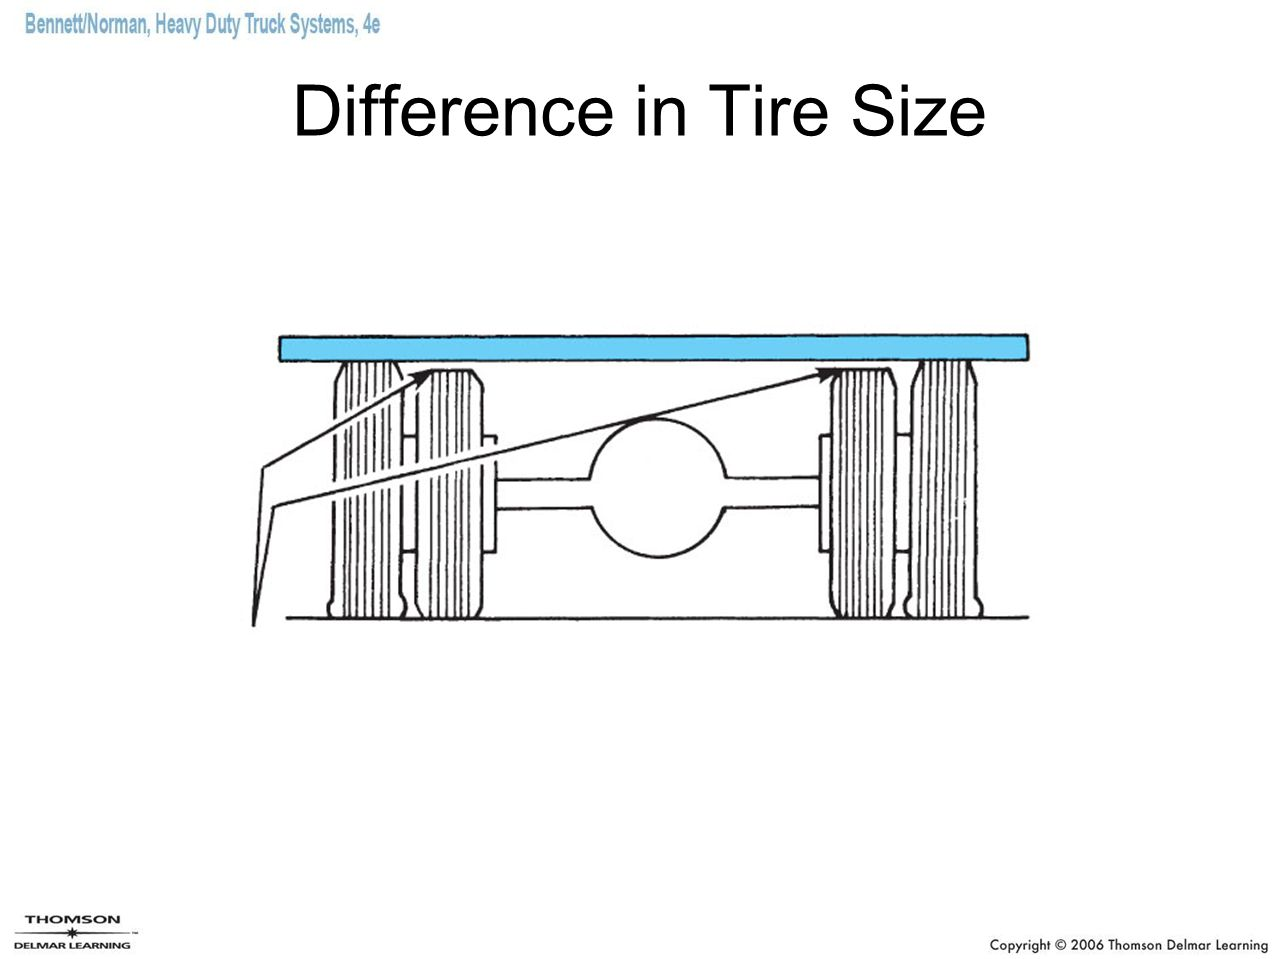 Difference in Tire Size